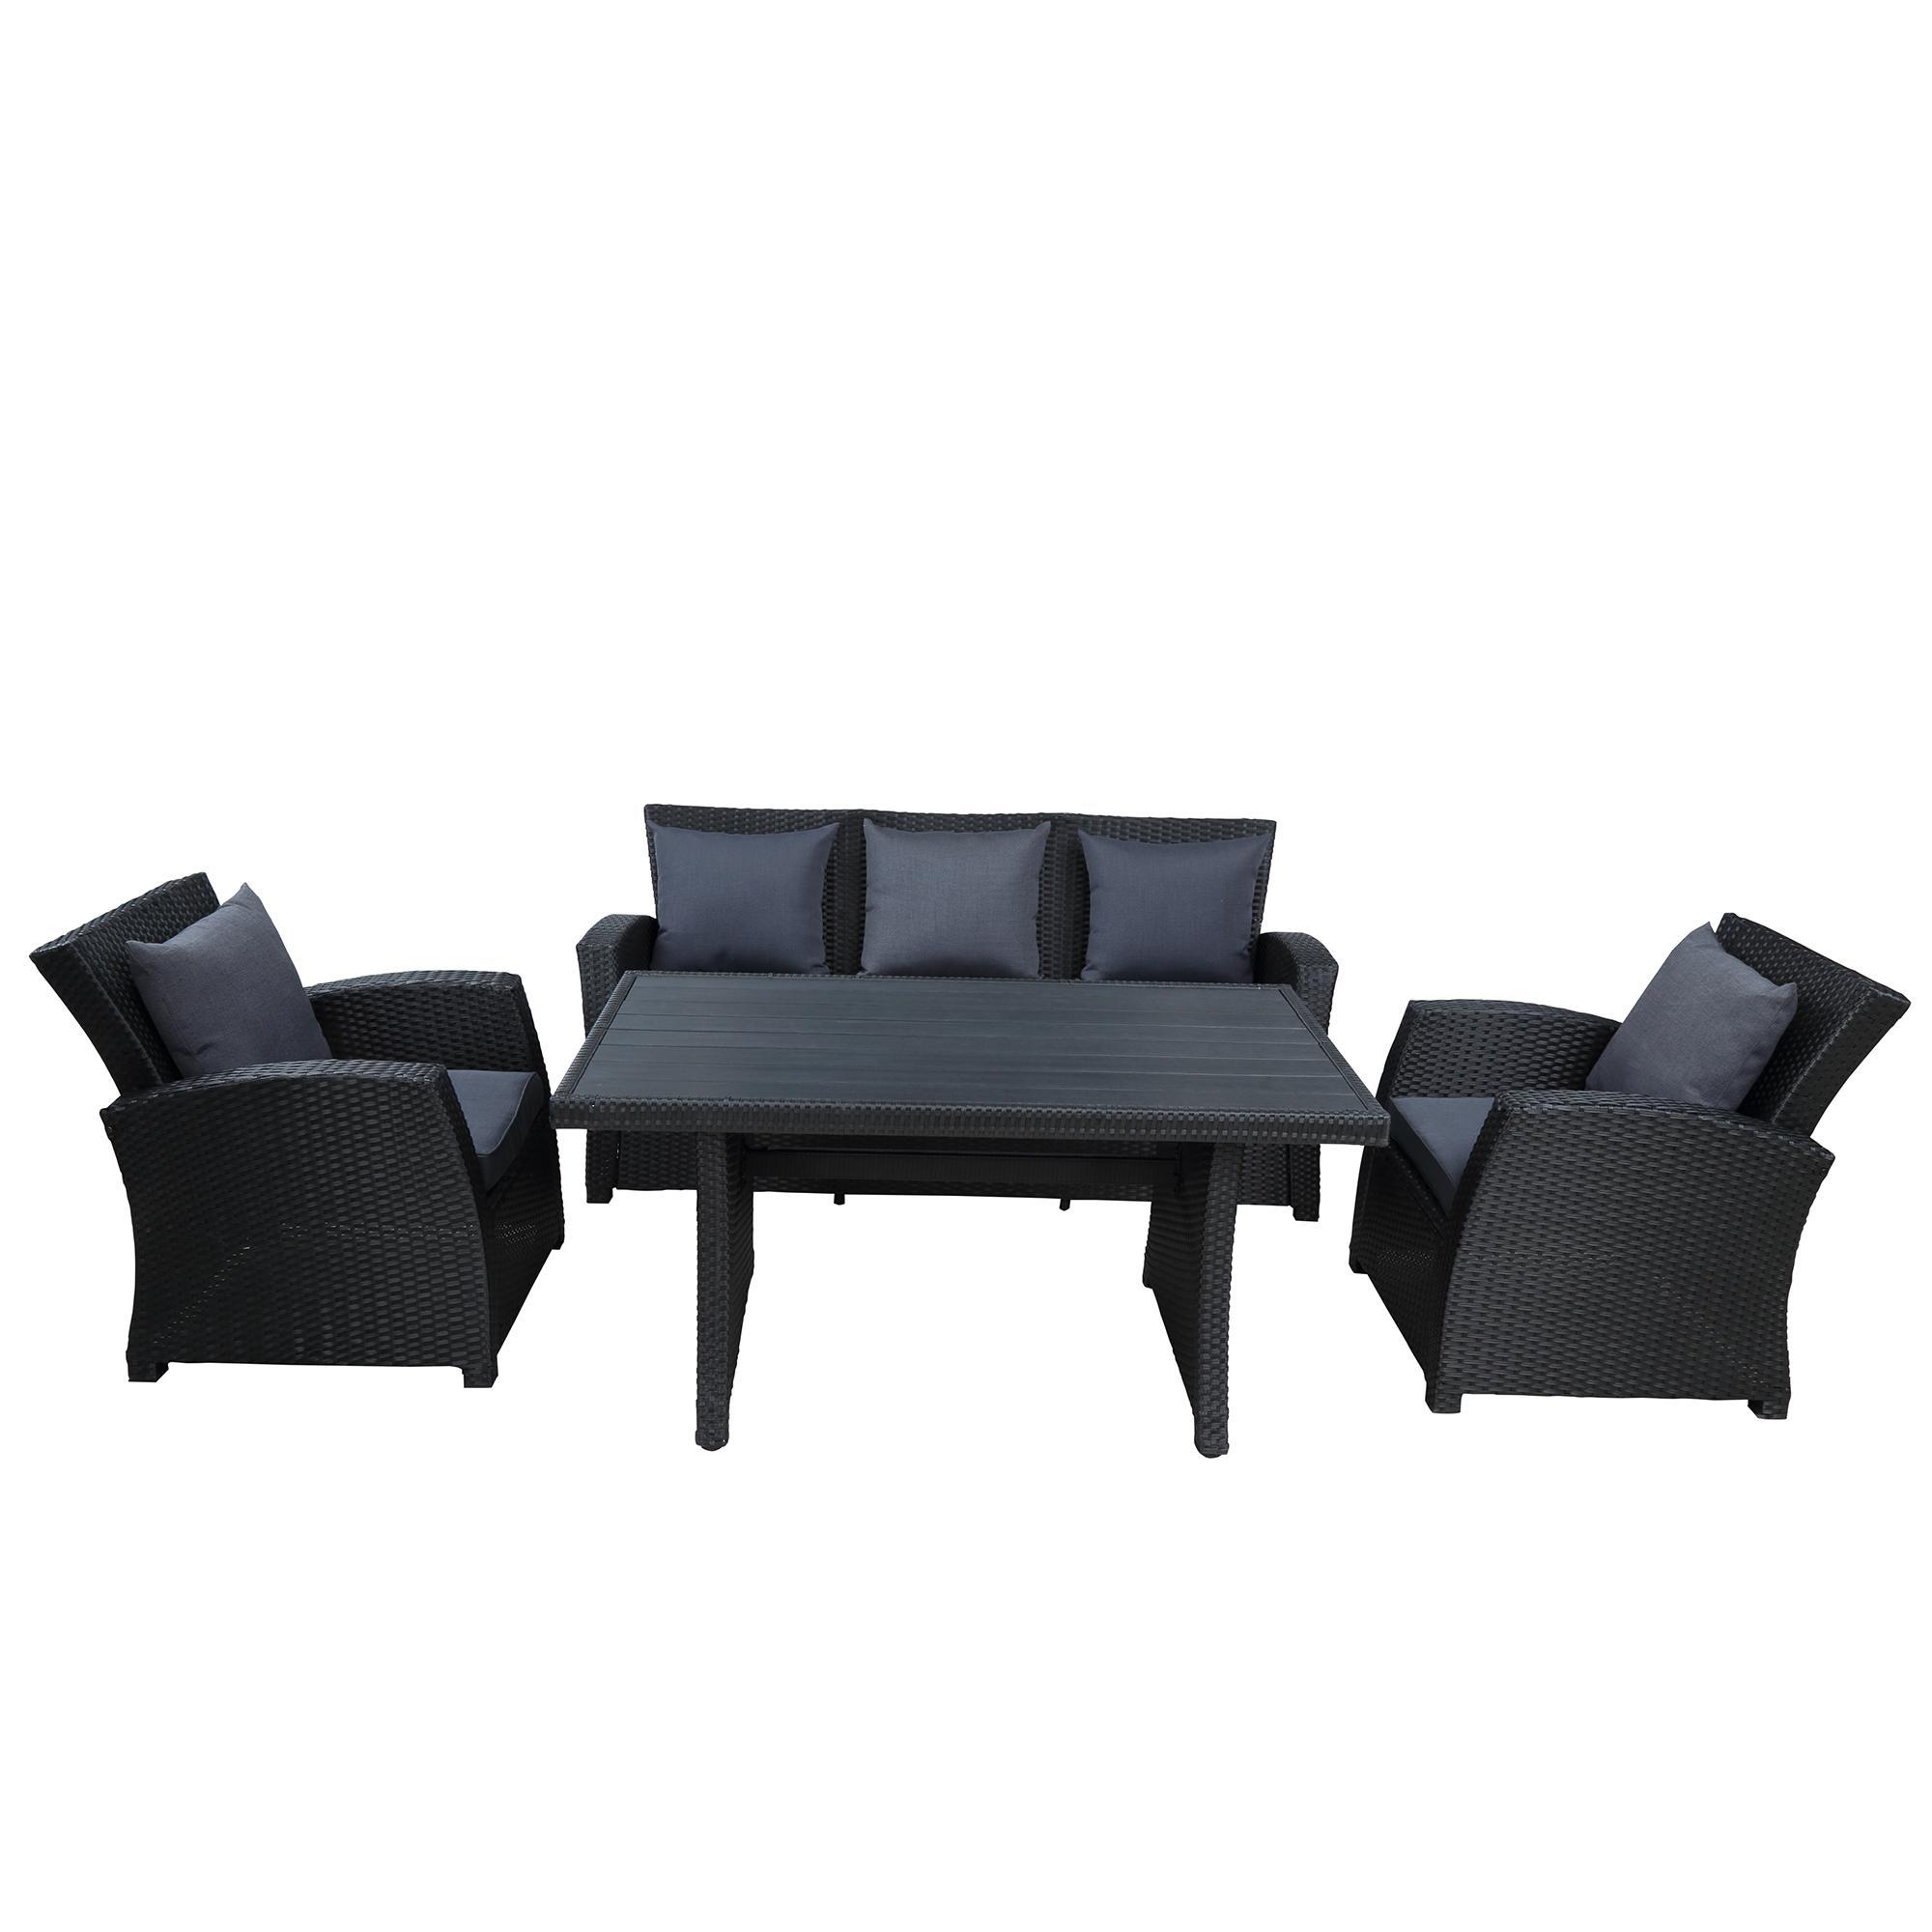 2021 classical vintage outdoor patio furniture set conversation set black wicker furniture sofa set with dark grey cushions wy000055aab from wholesalefactory 787 1 dhgate com